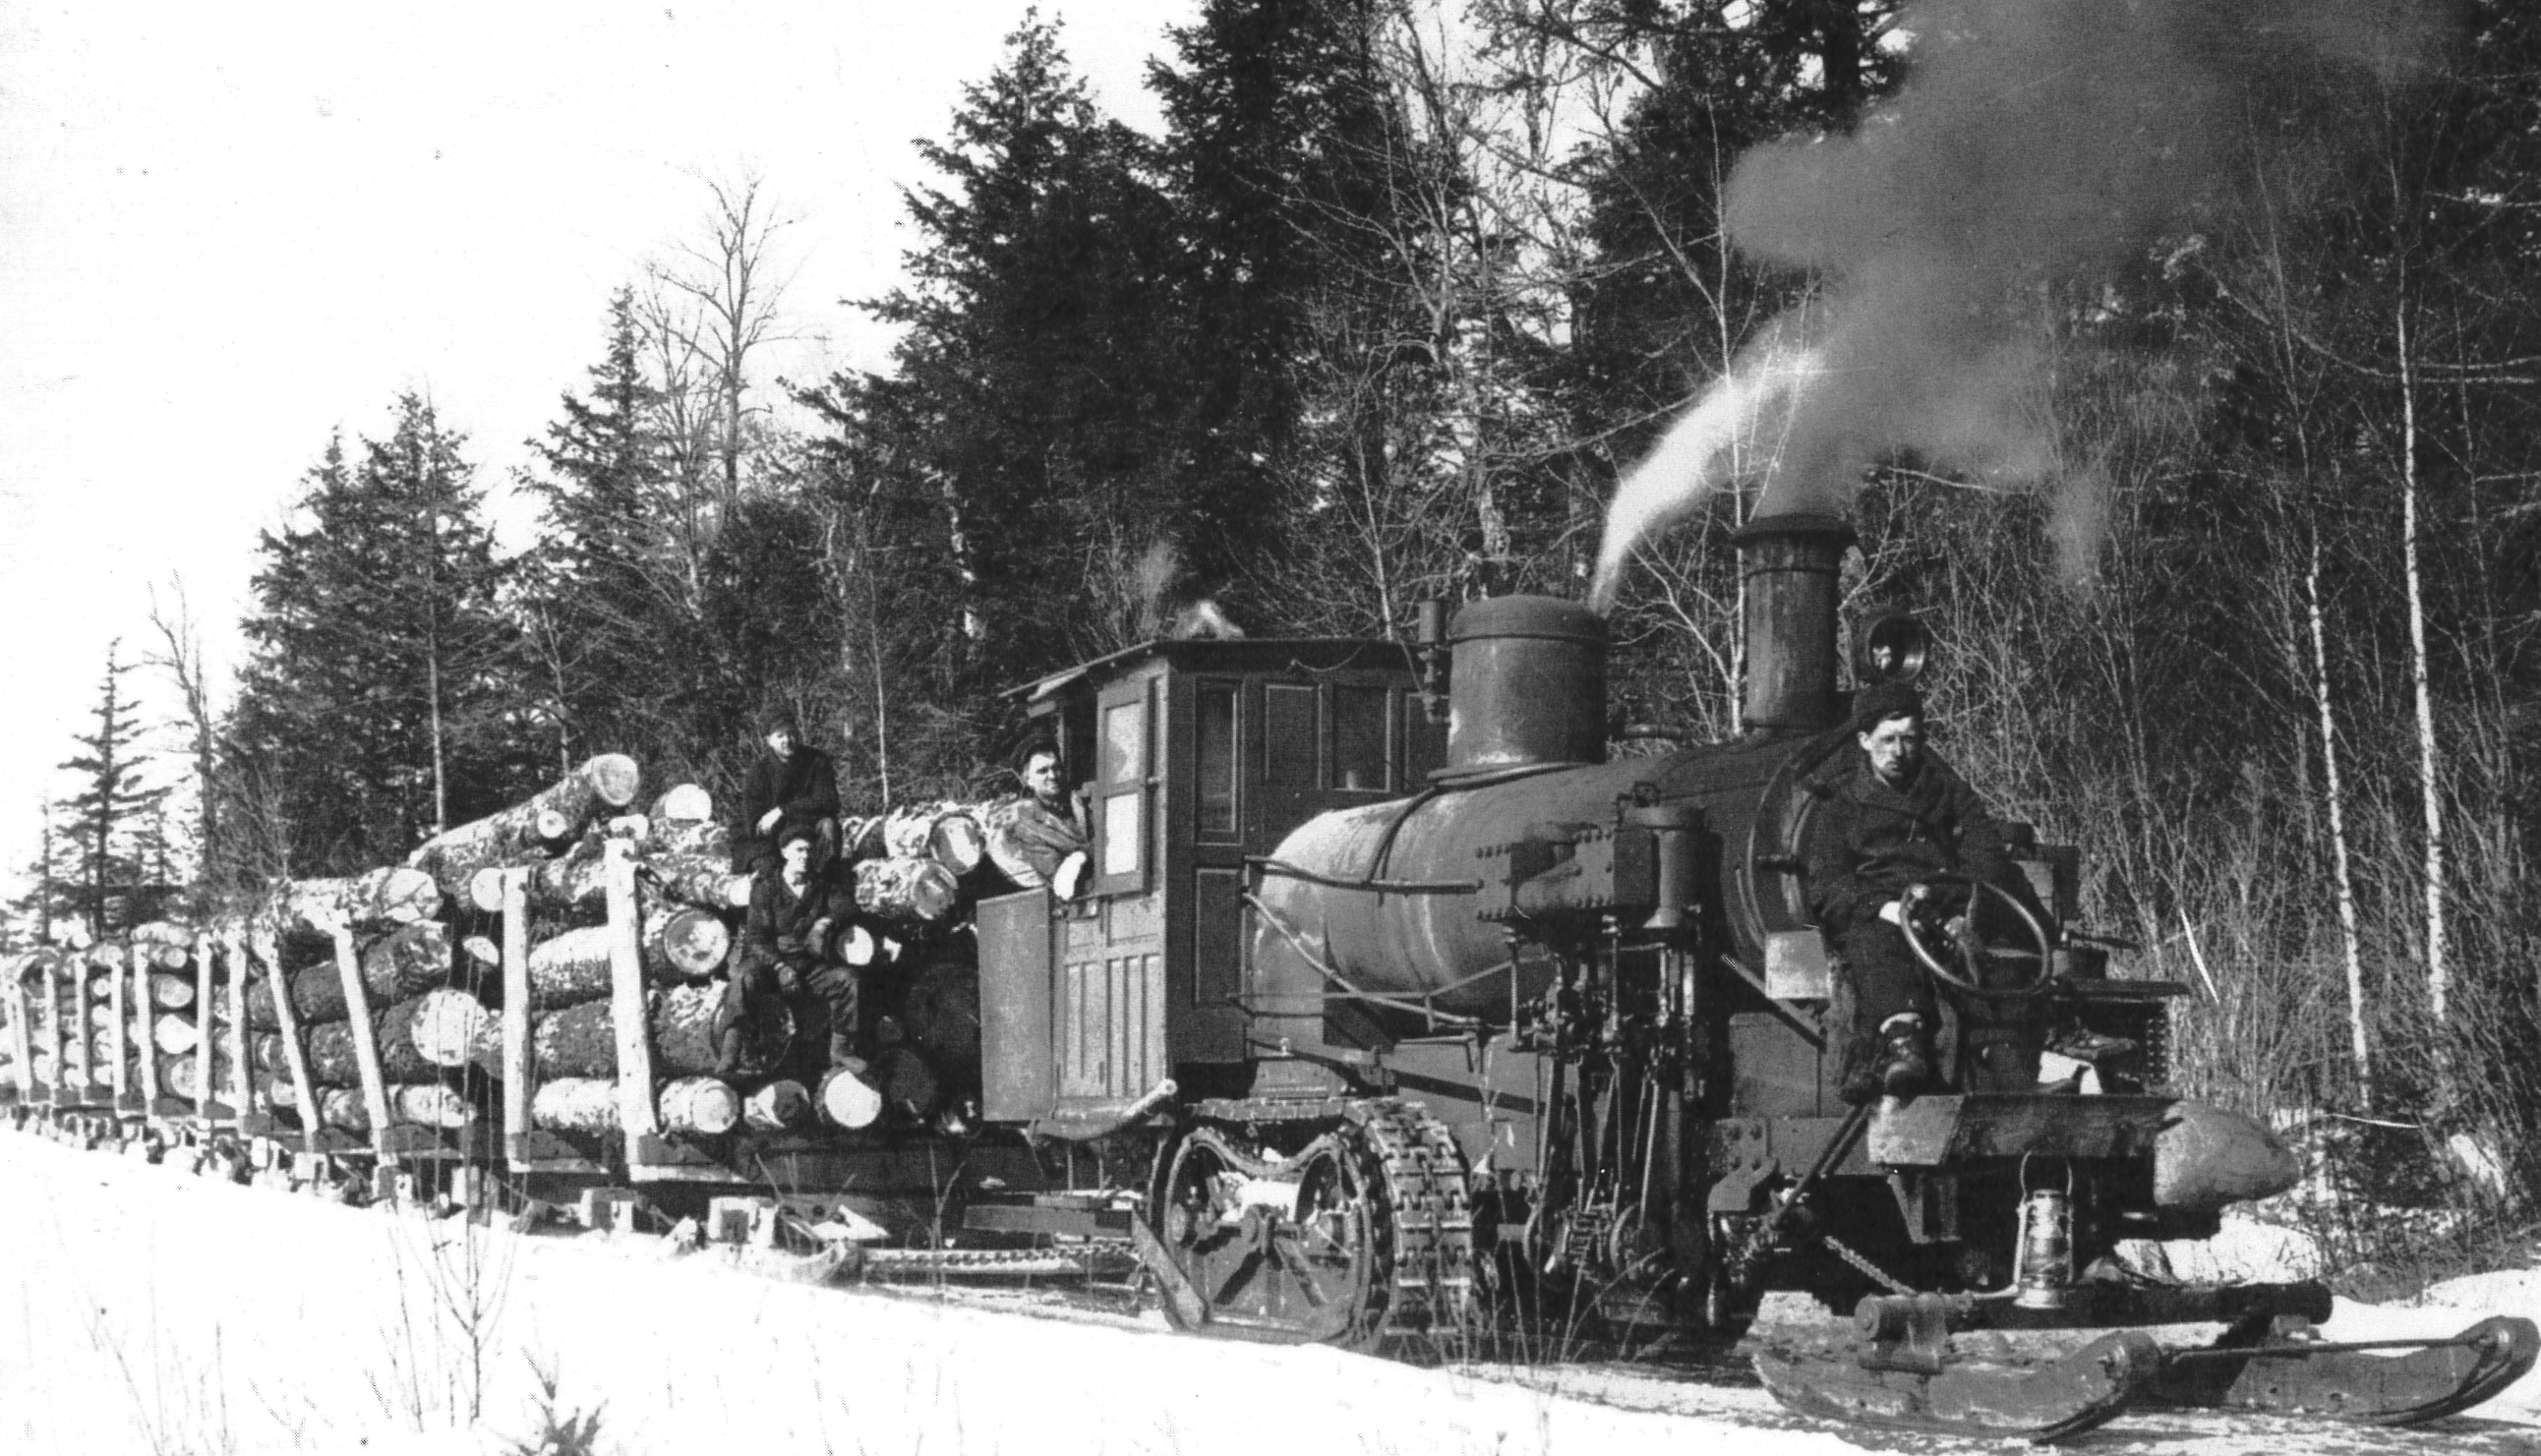 Phoenix steam haulers like this one replaced many of the log hauling teams. Courtesy of Boulder Junction Area Historical Society